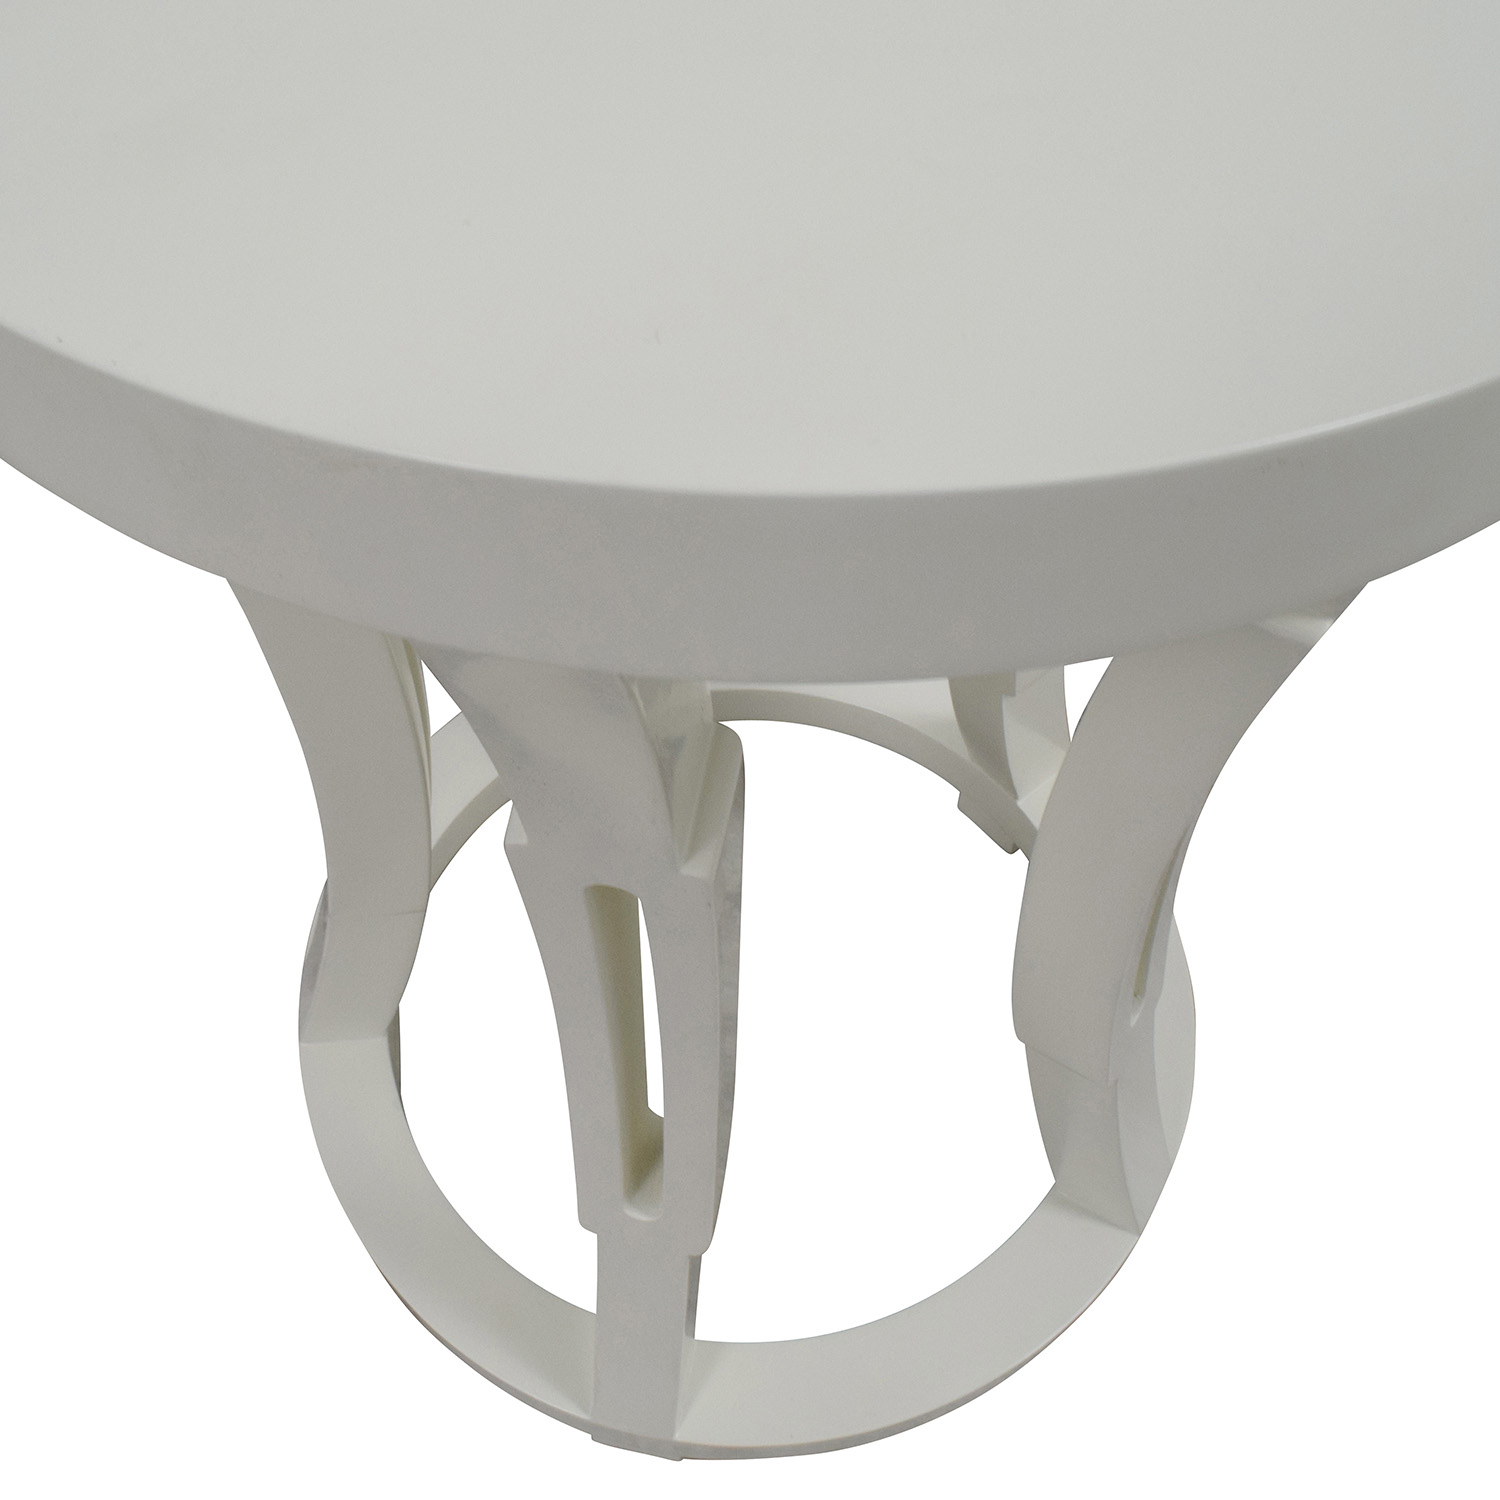 Bungalow 5 Bungalow 5 Hour Glass Stool Side Table or Stool price